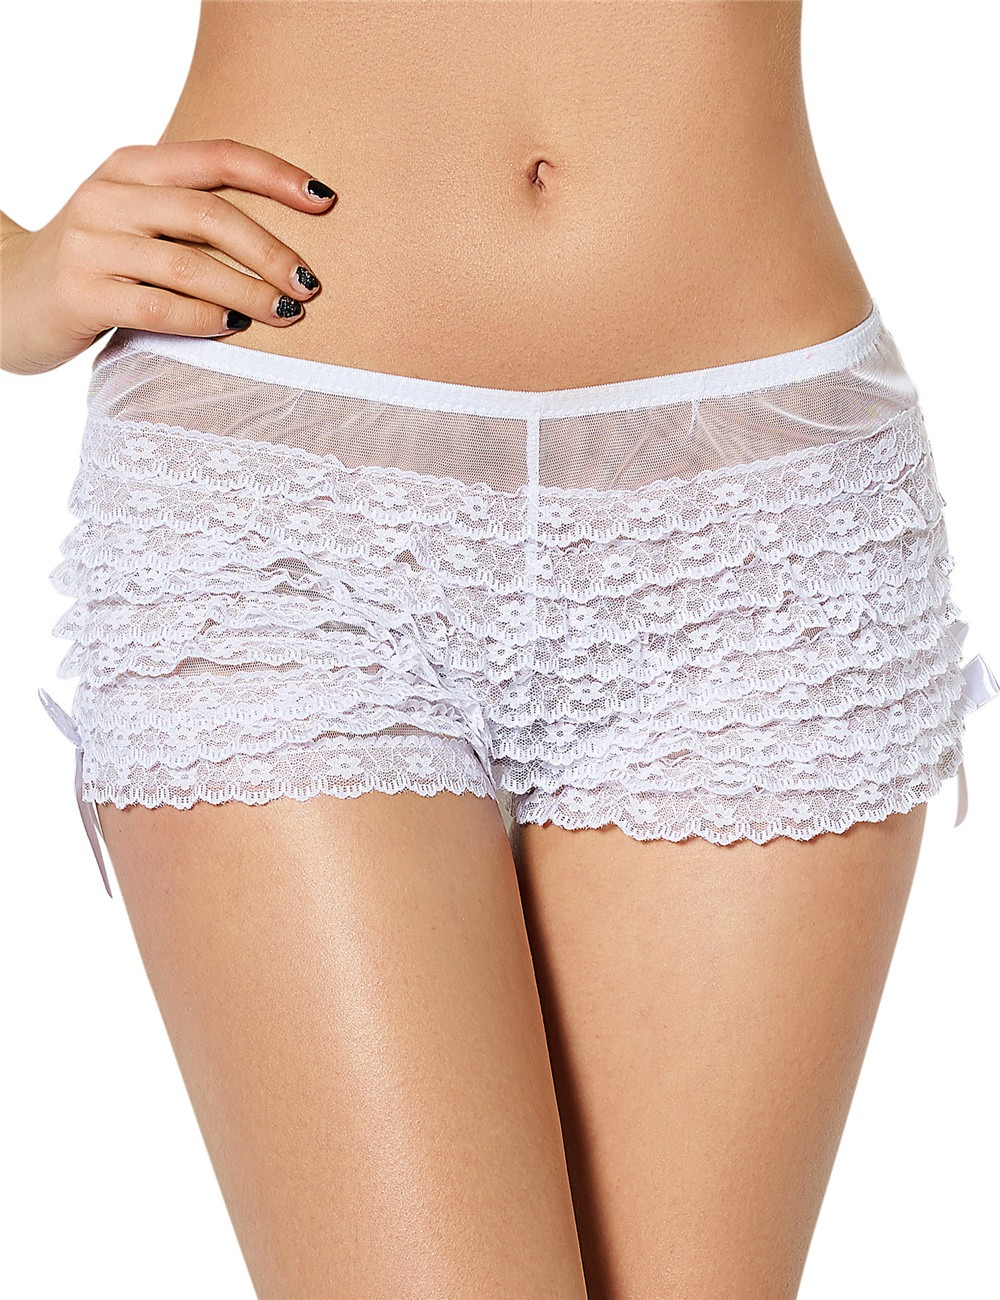 white frilly knickers